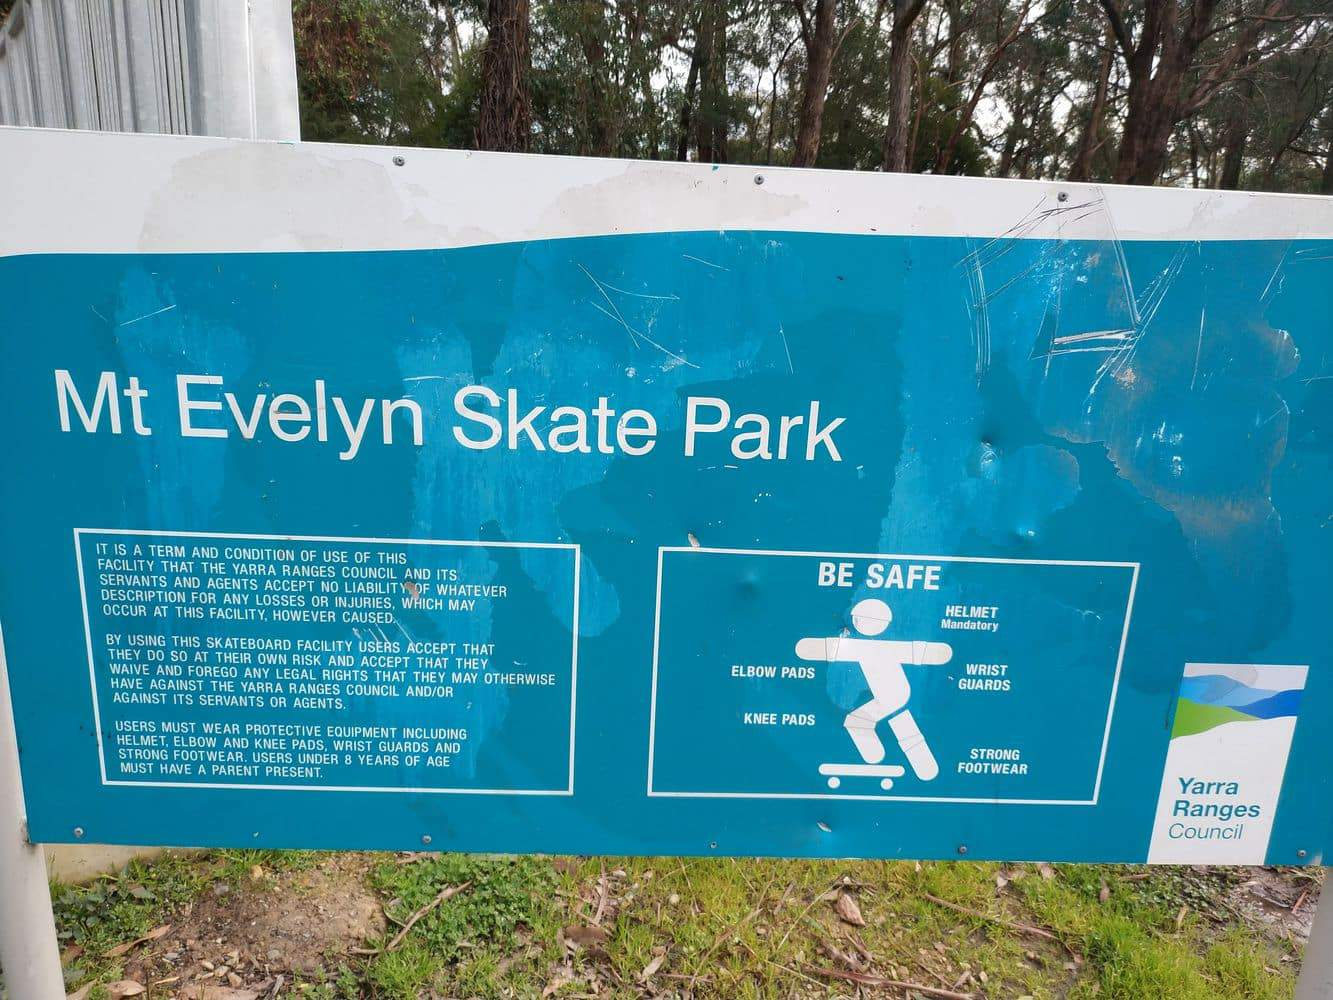 mount evelyn skate park 07